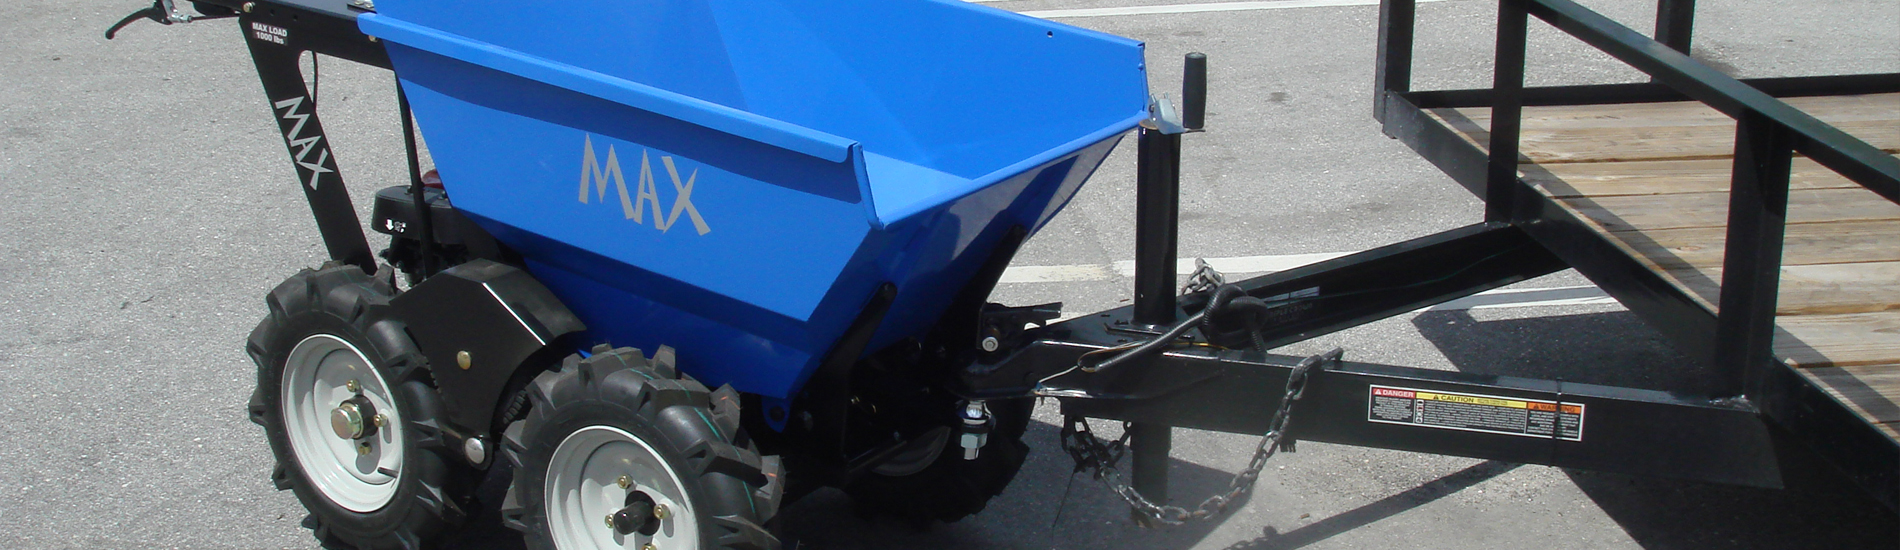 Muck Truck Max with Tow Hitch Accessory